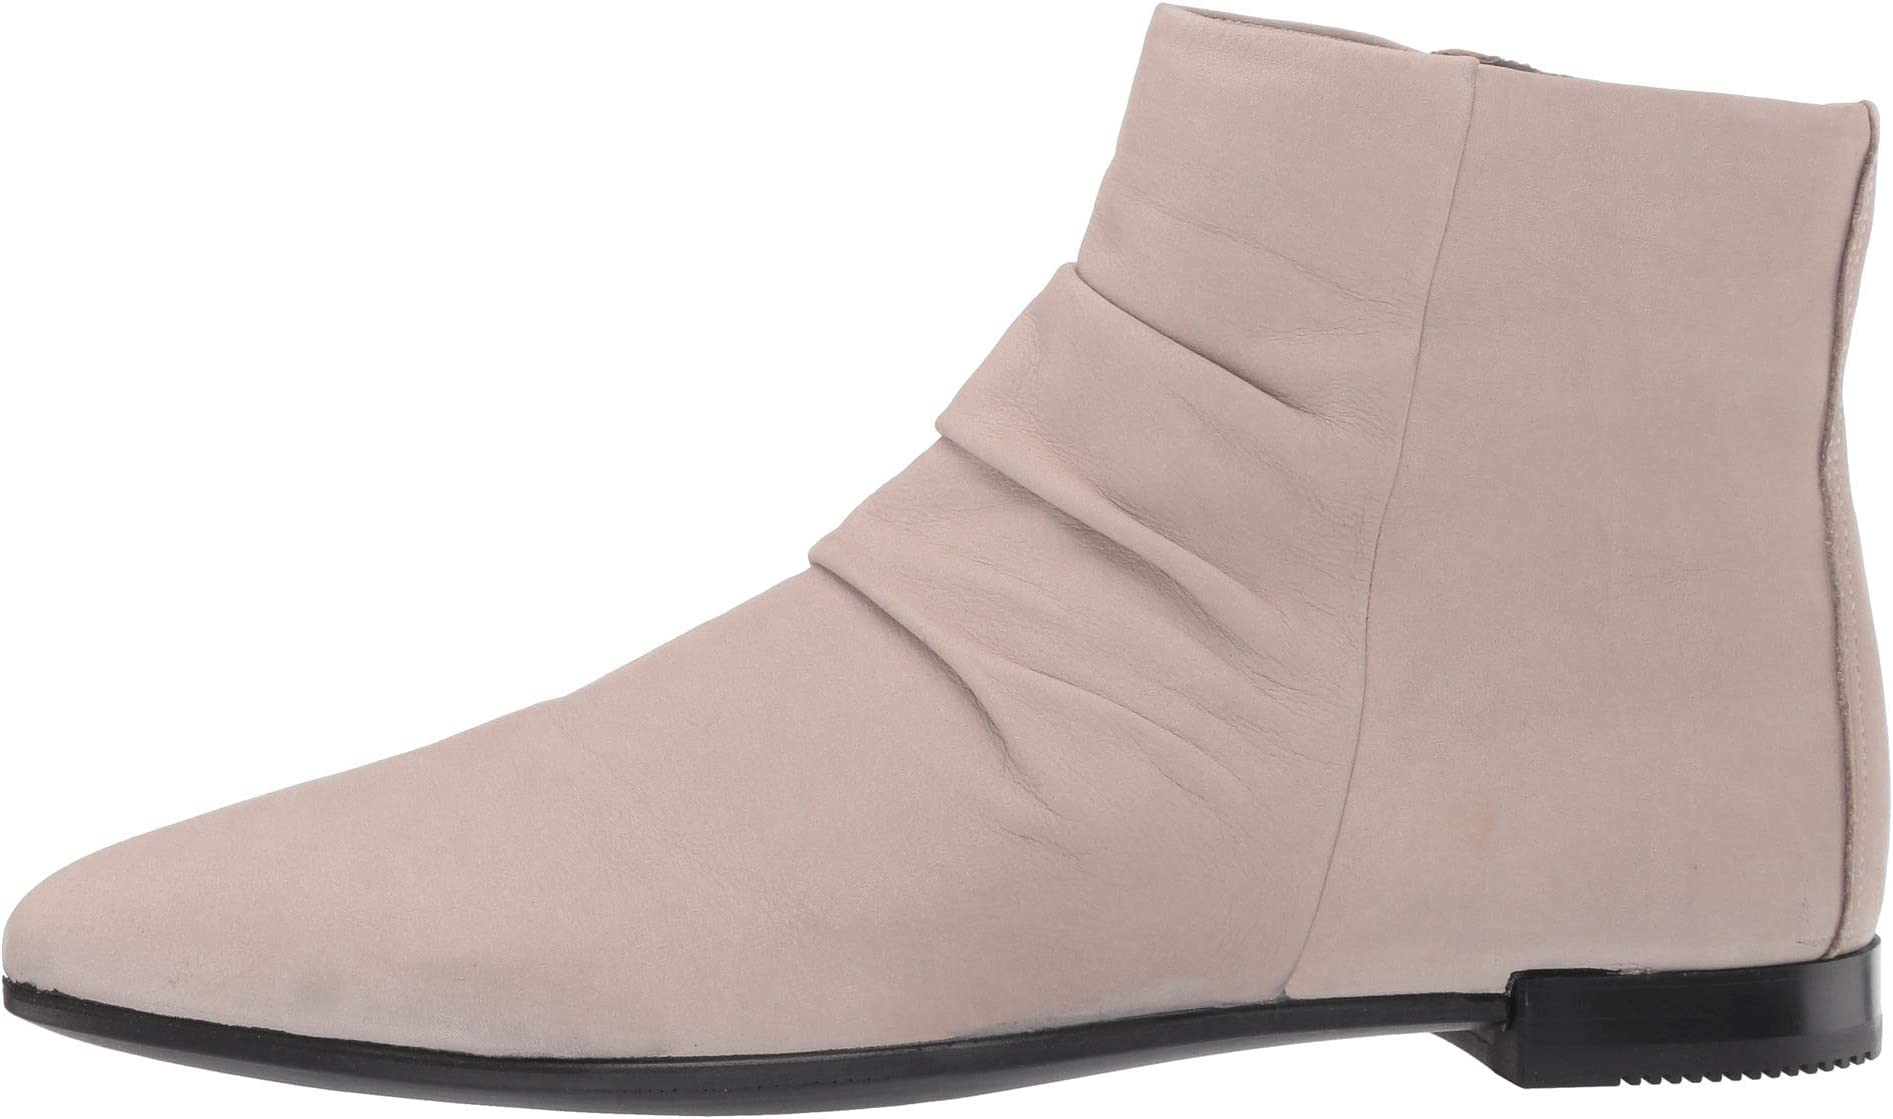 ECCO Shape Pointy Toe Ankle Boot | Women's shoes | 2020 Newest